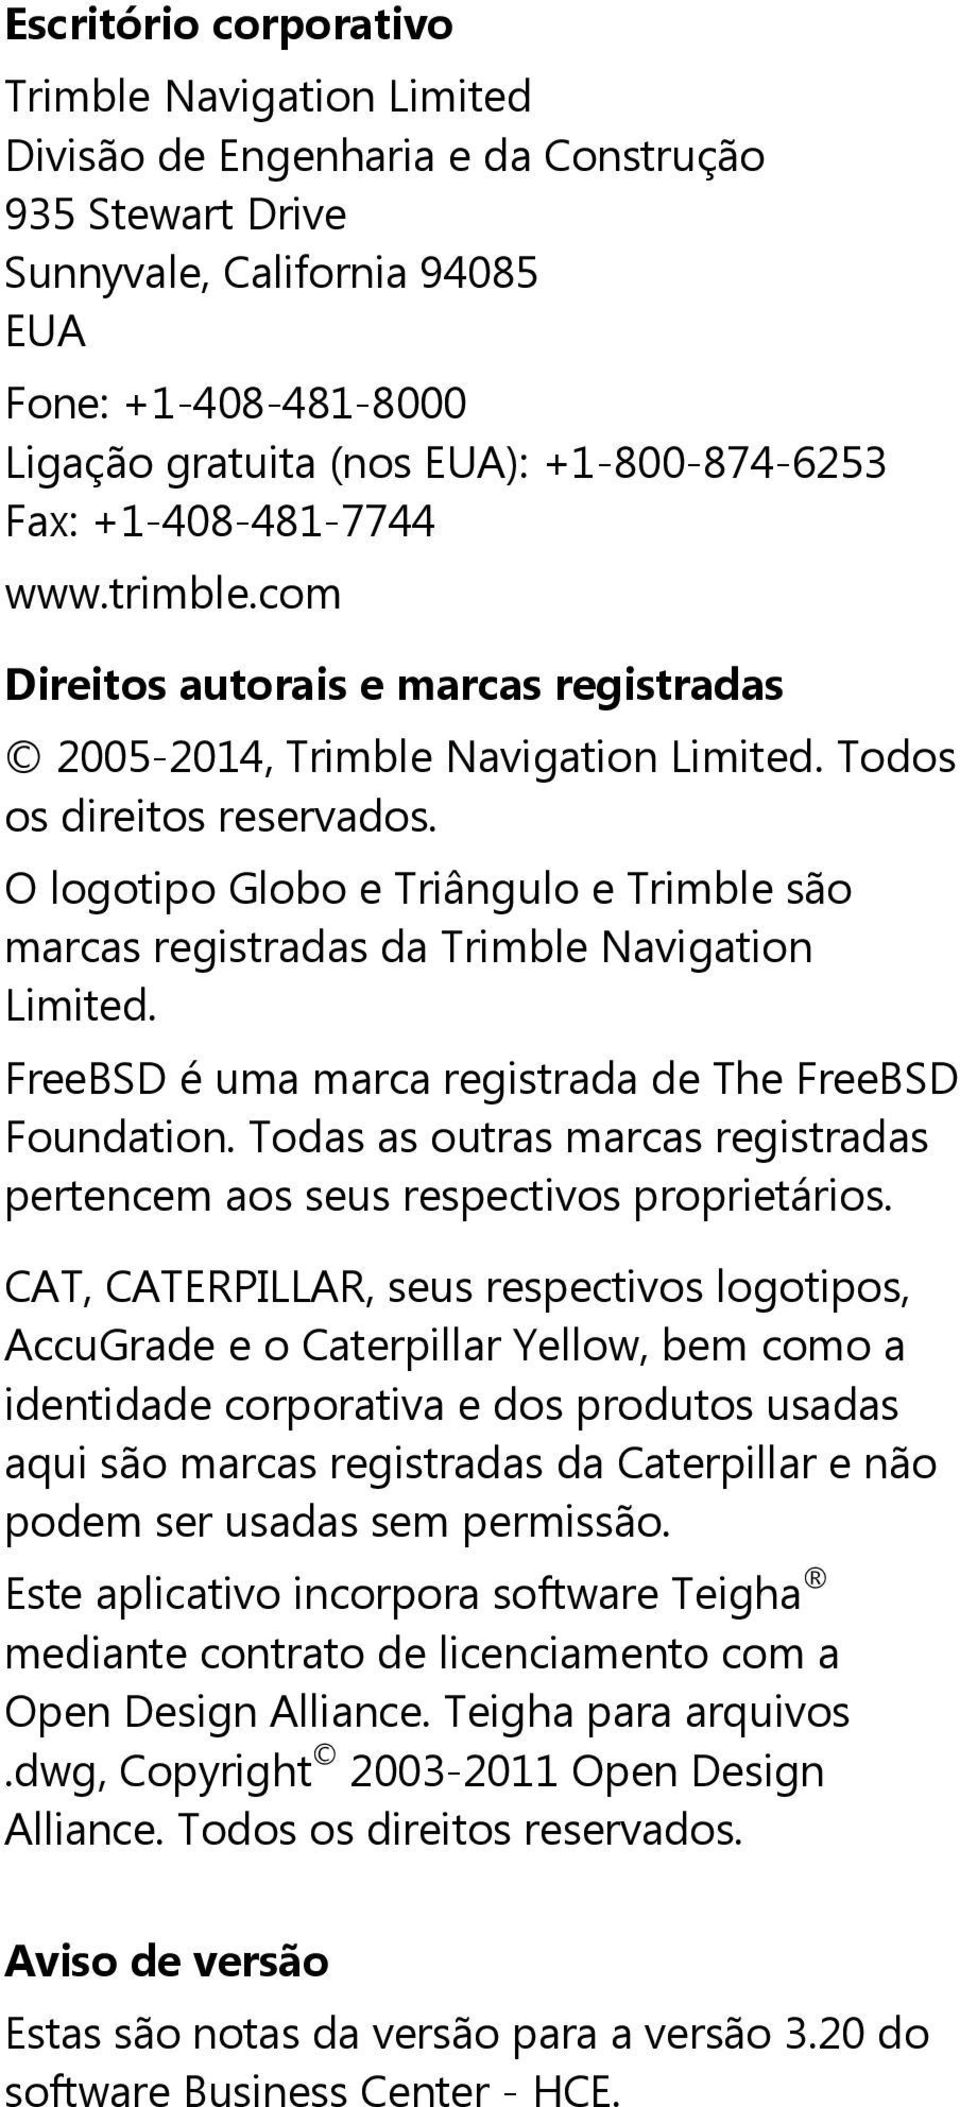 O logotipo Globo e Triângulo e Trimble são marcas registradas da Trimble Navigation Limited. FreeBSD é uma marca registrada de The FreeBSD Foundation.